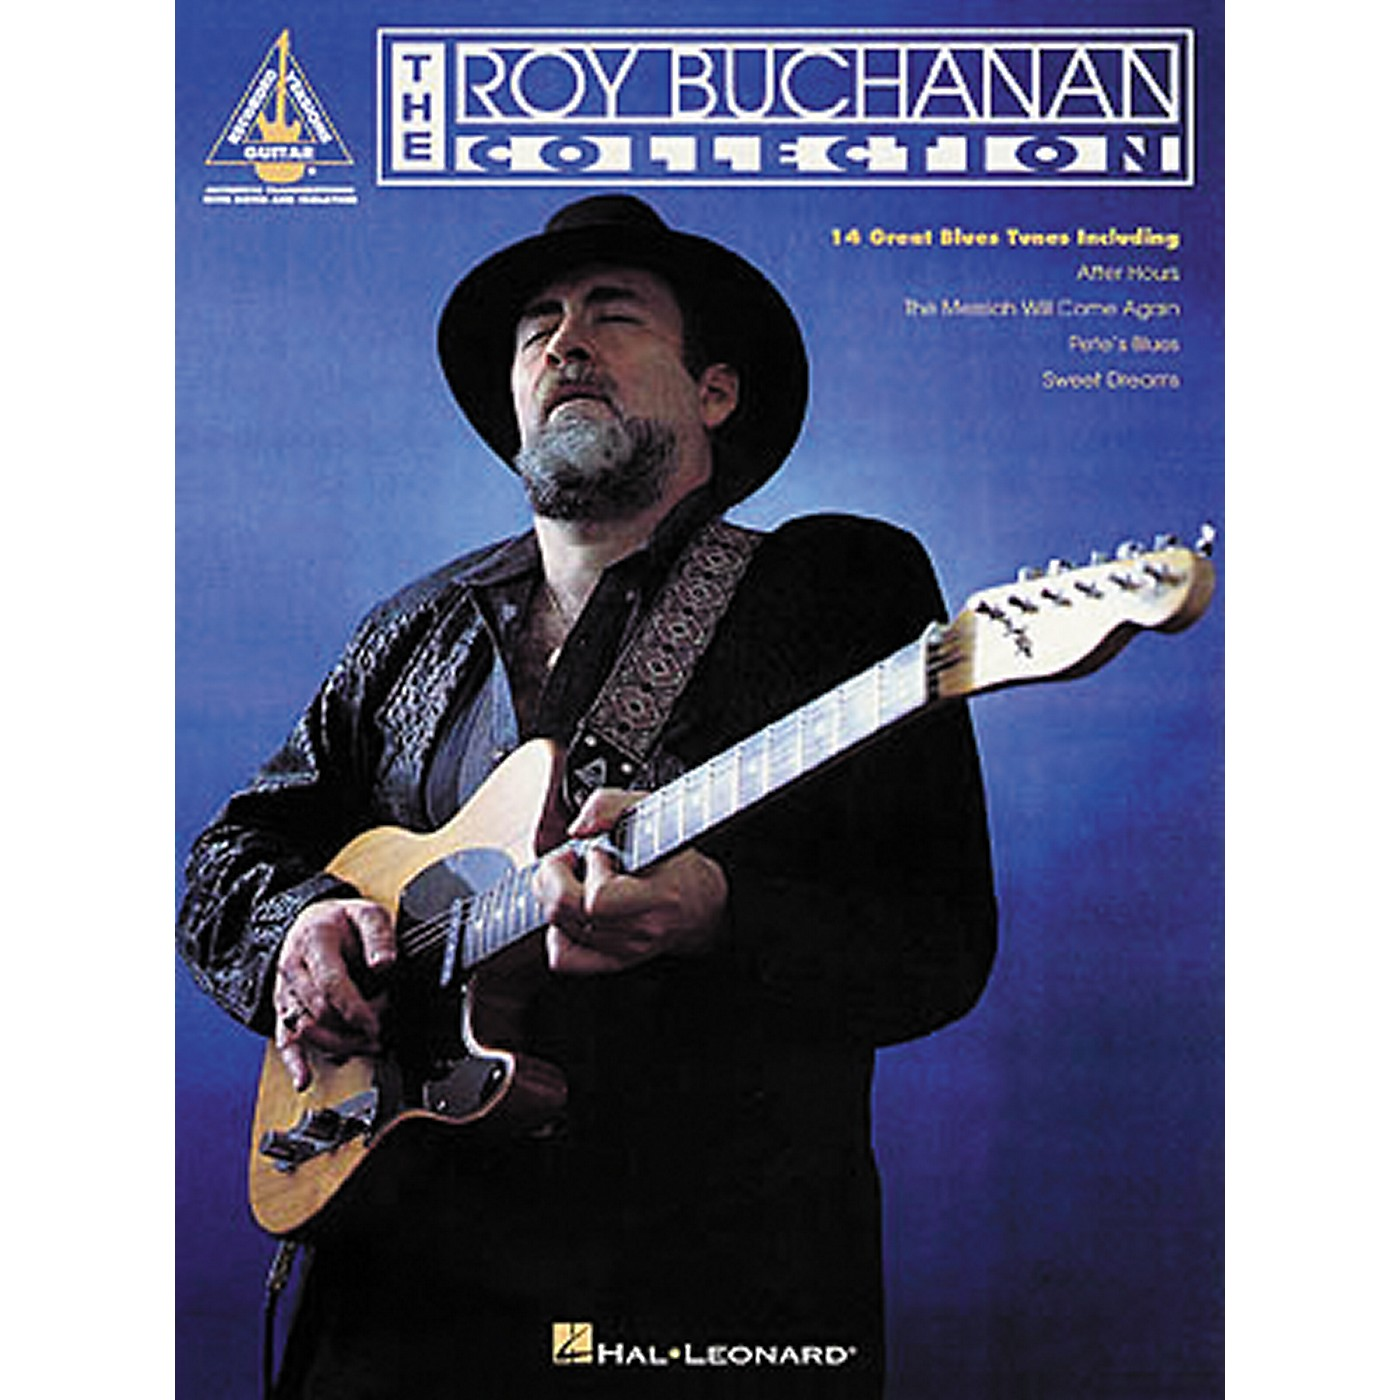 Hal Leonard The Roy Buchanan Collection Guitar Tab Songbook thumbnail